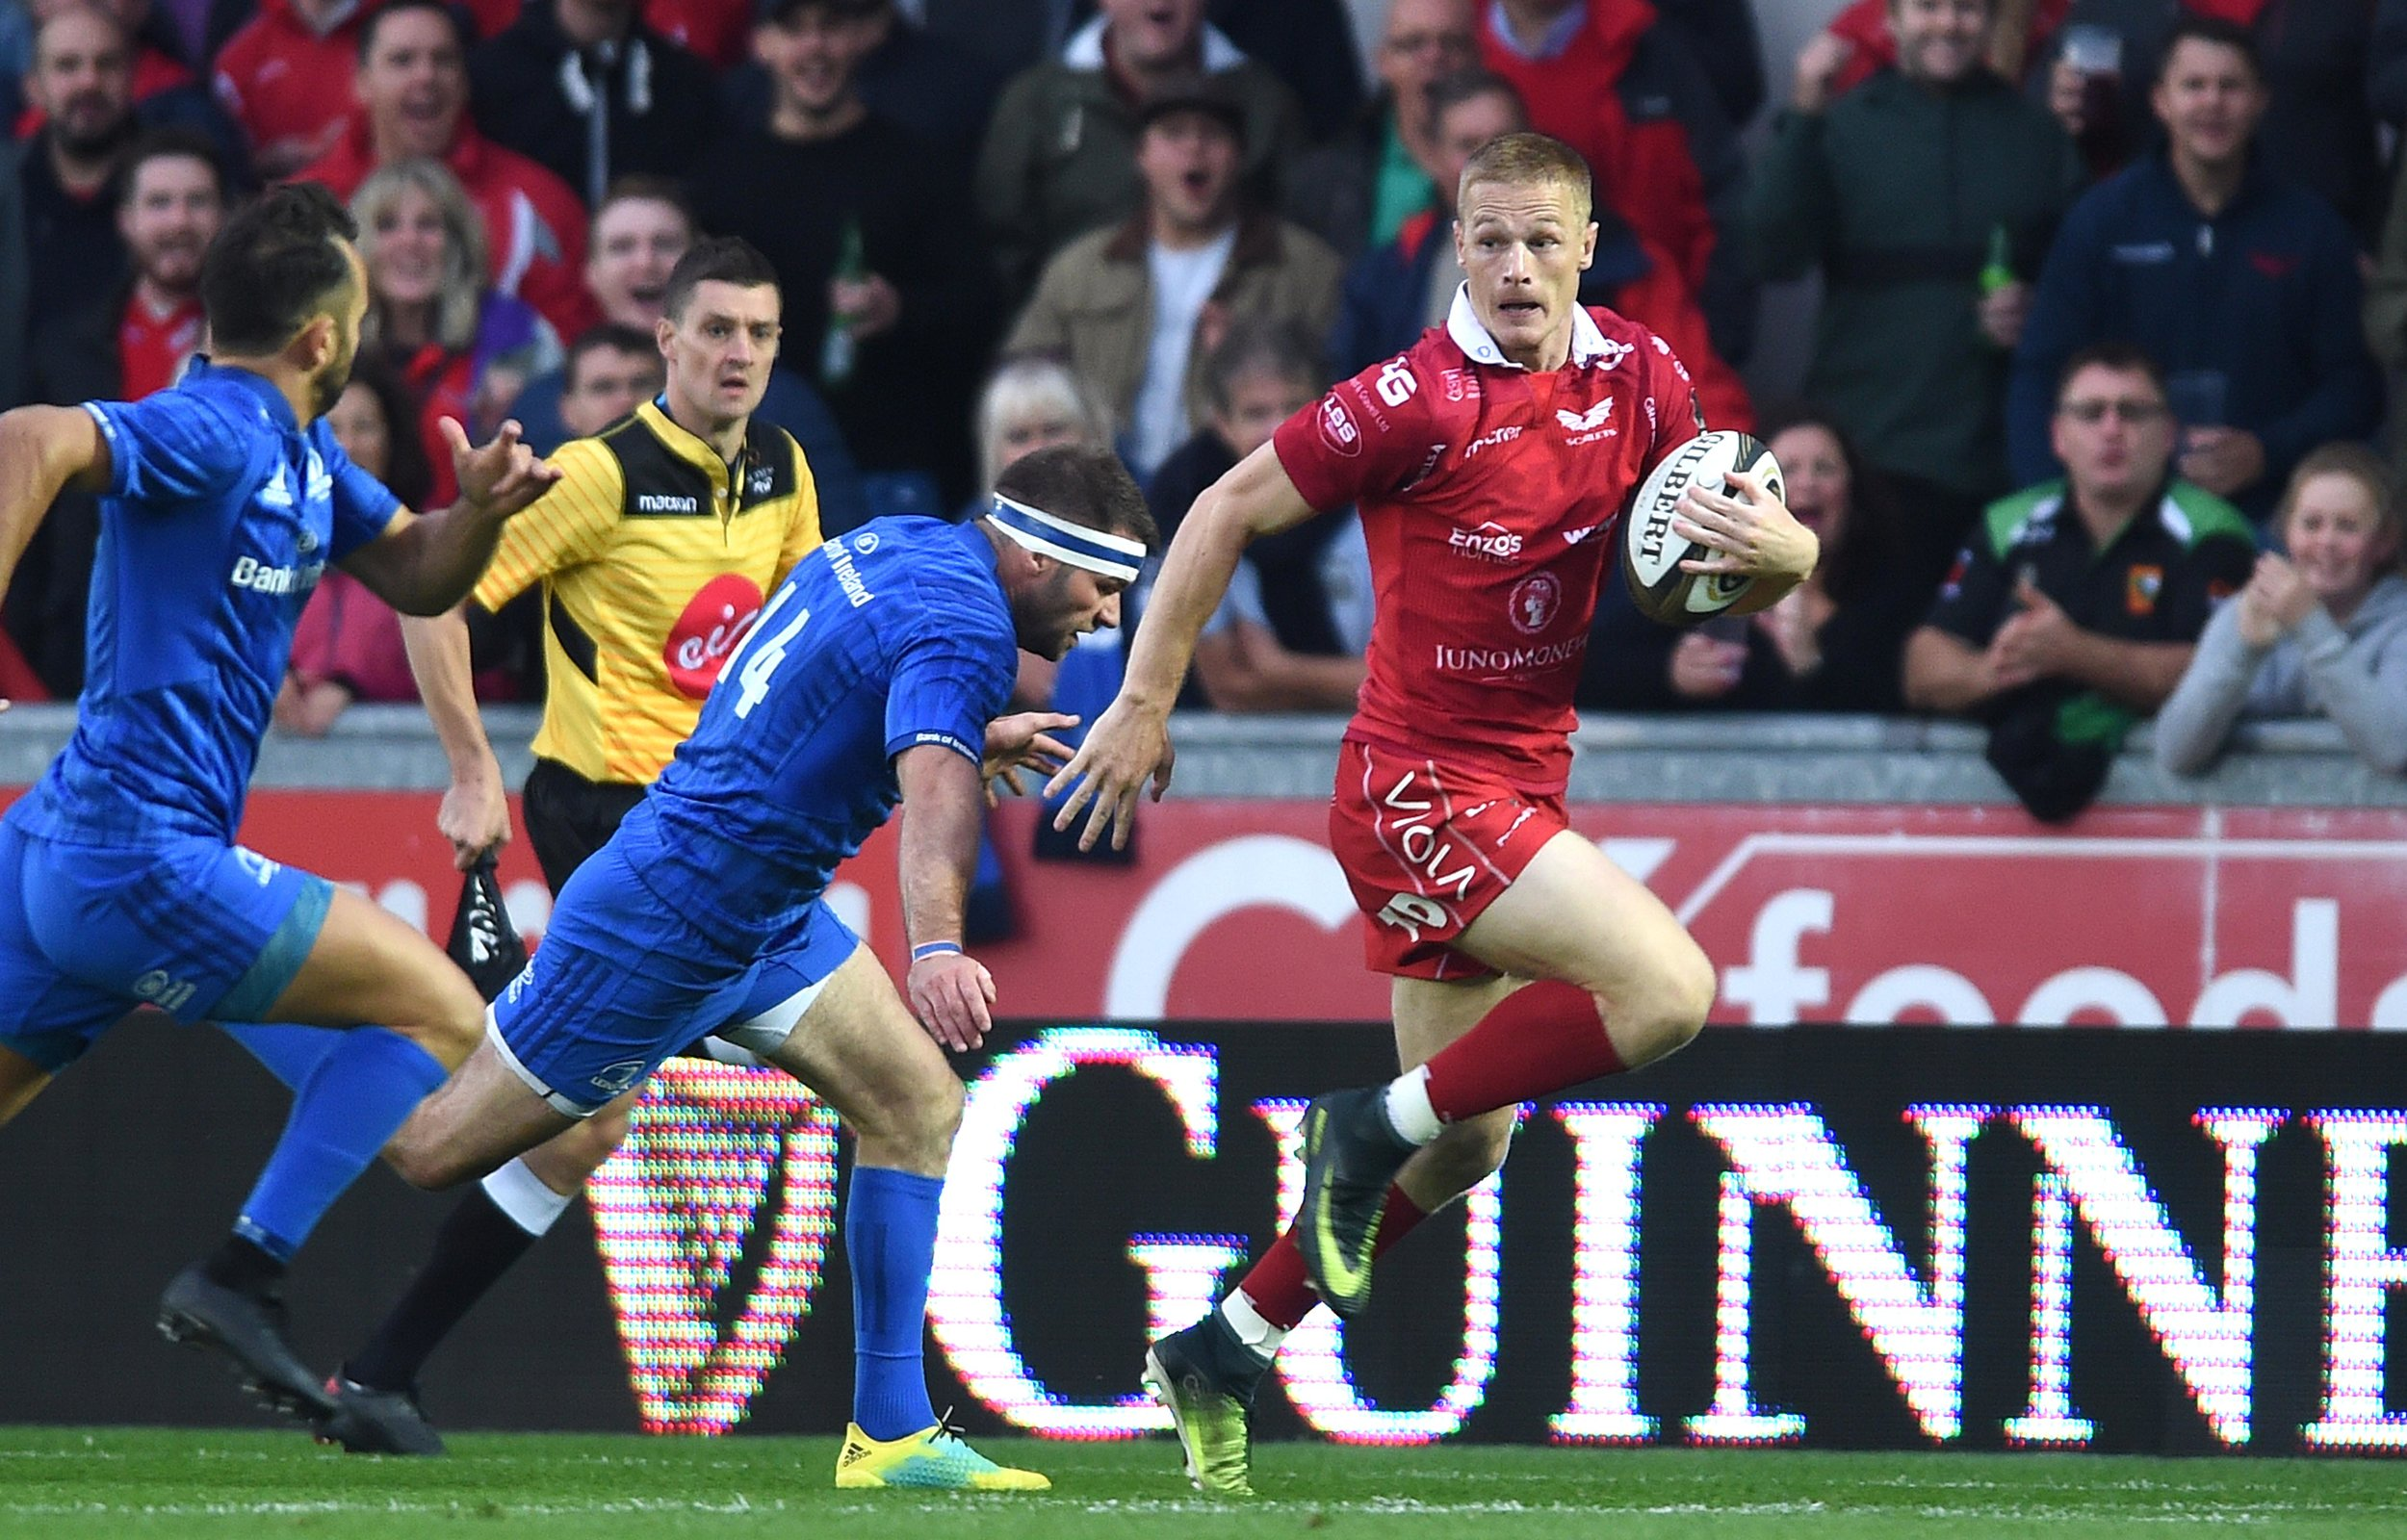 Johnny McNicholl in action against Leinster last week